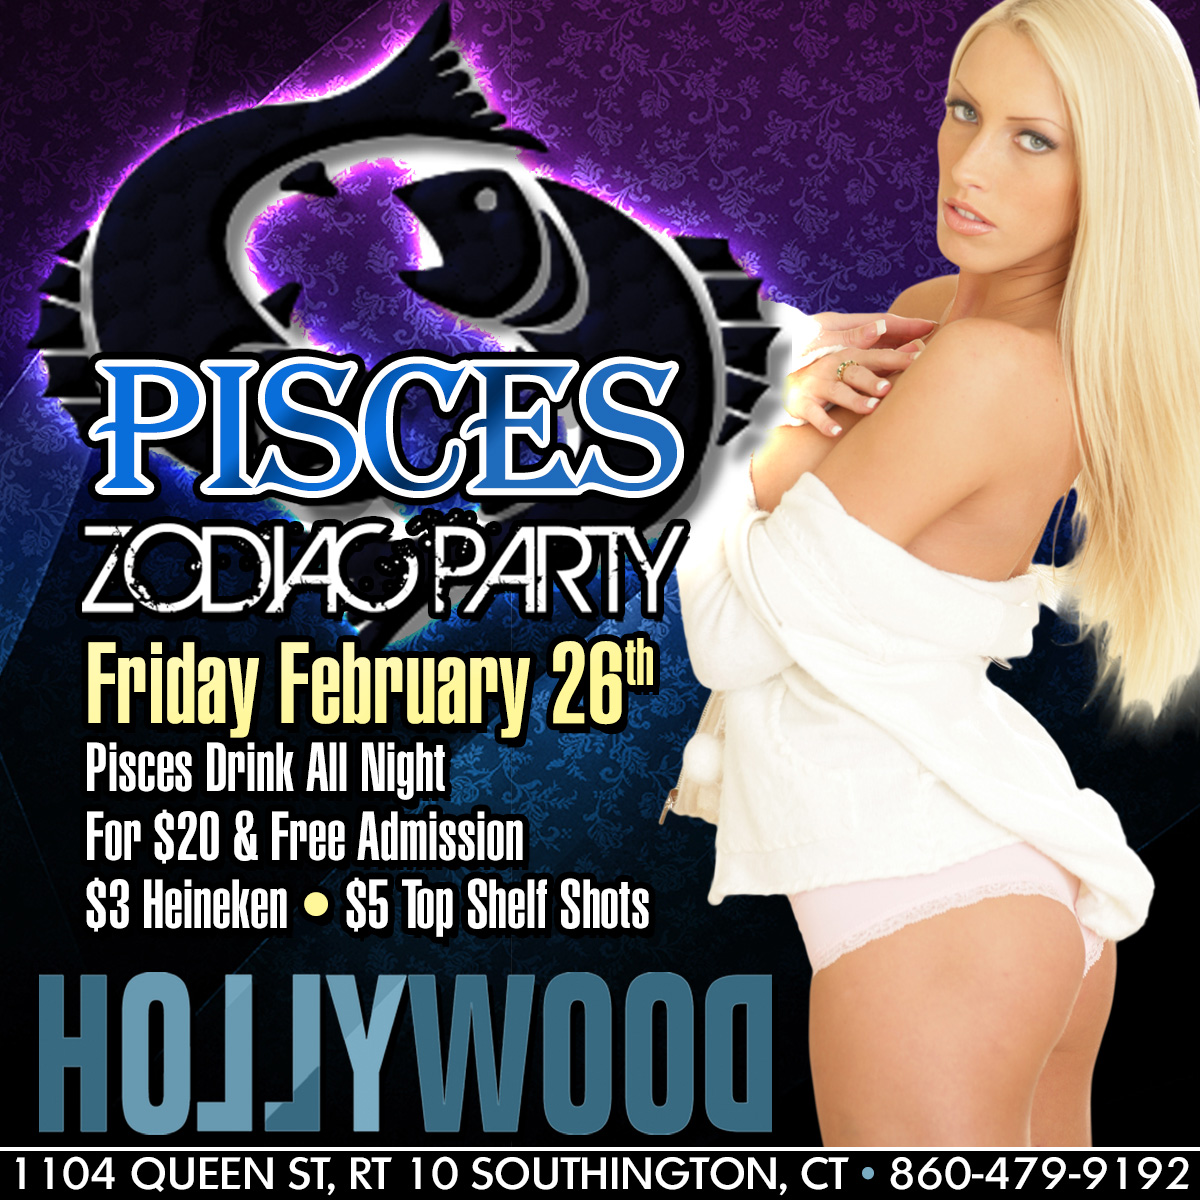 Pisces Zodiac Party | Hollywood Strip Club Connecticut